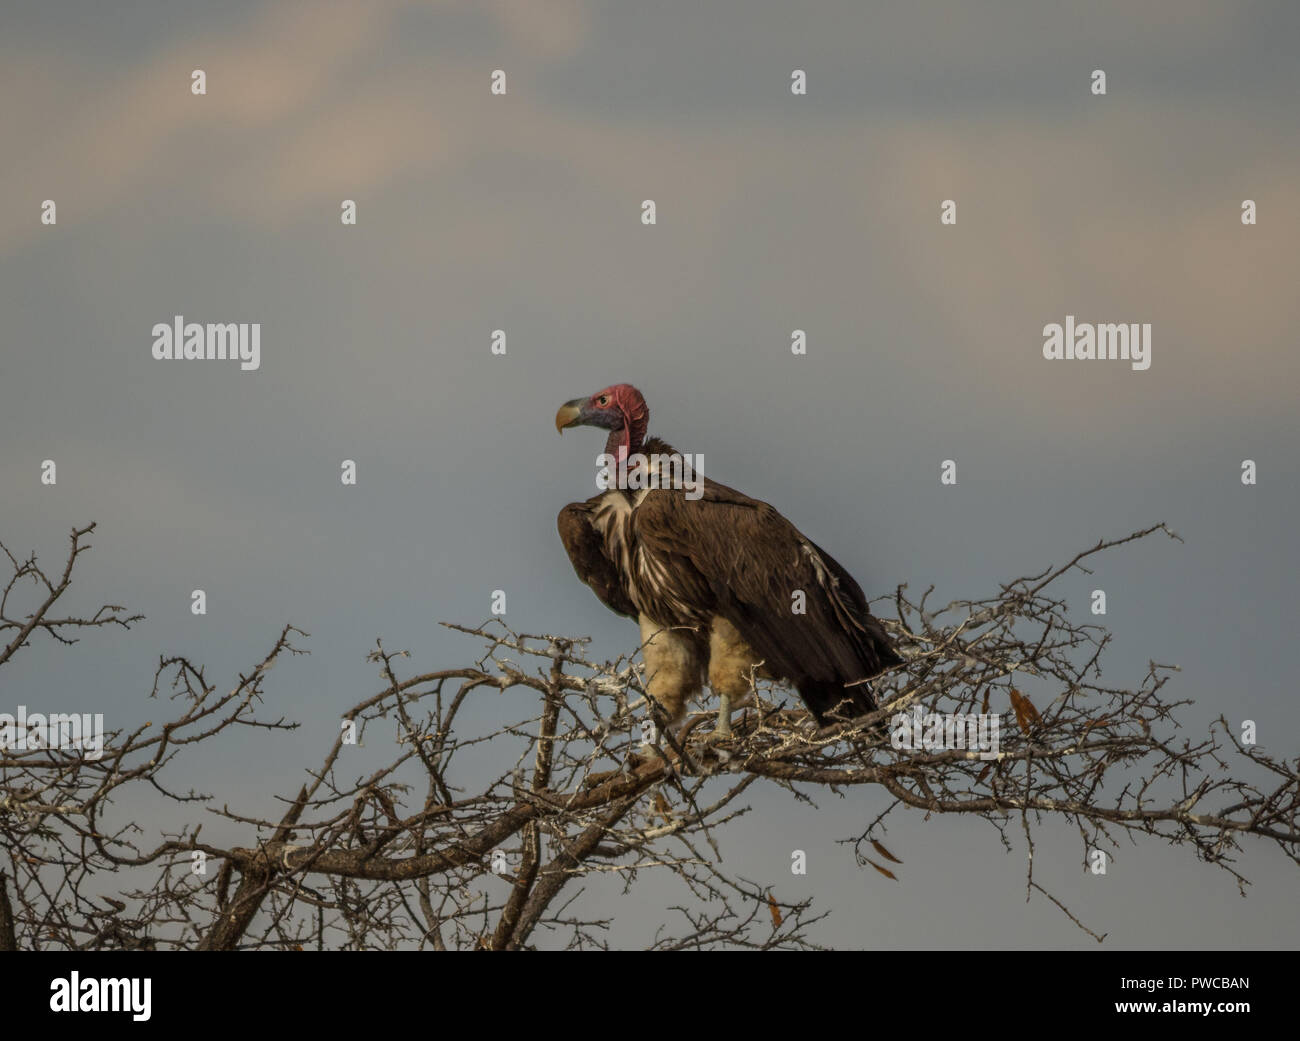 A lapped-faced vulture perches in the canopy of a large dry tree in the African bush image with copy space in landscape format - Stock Image